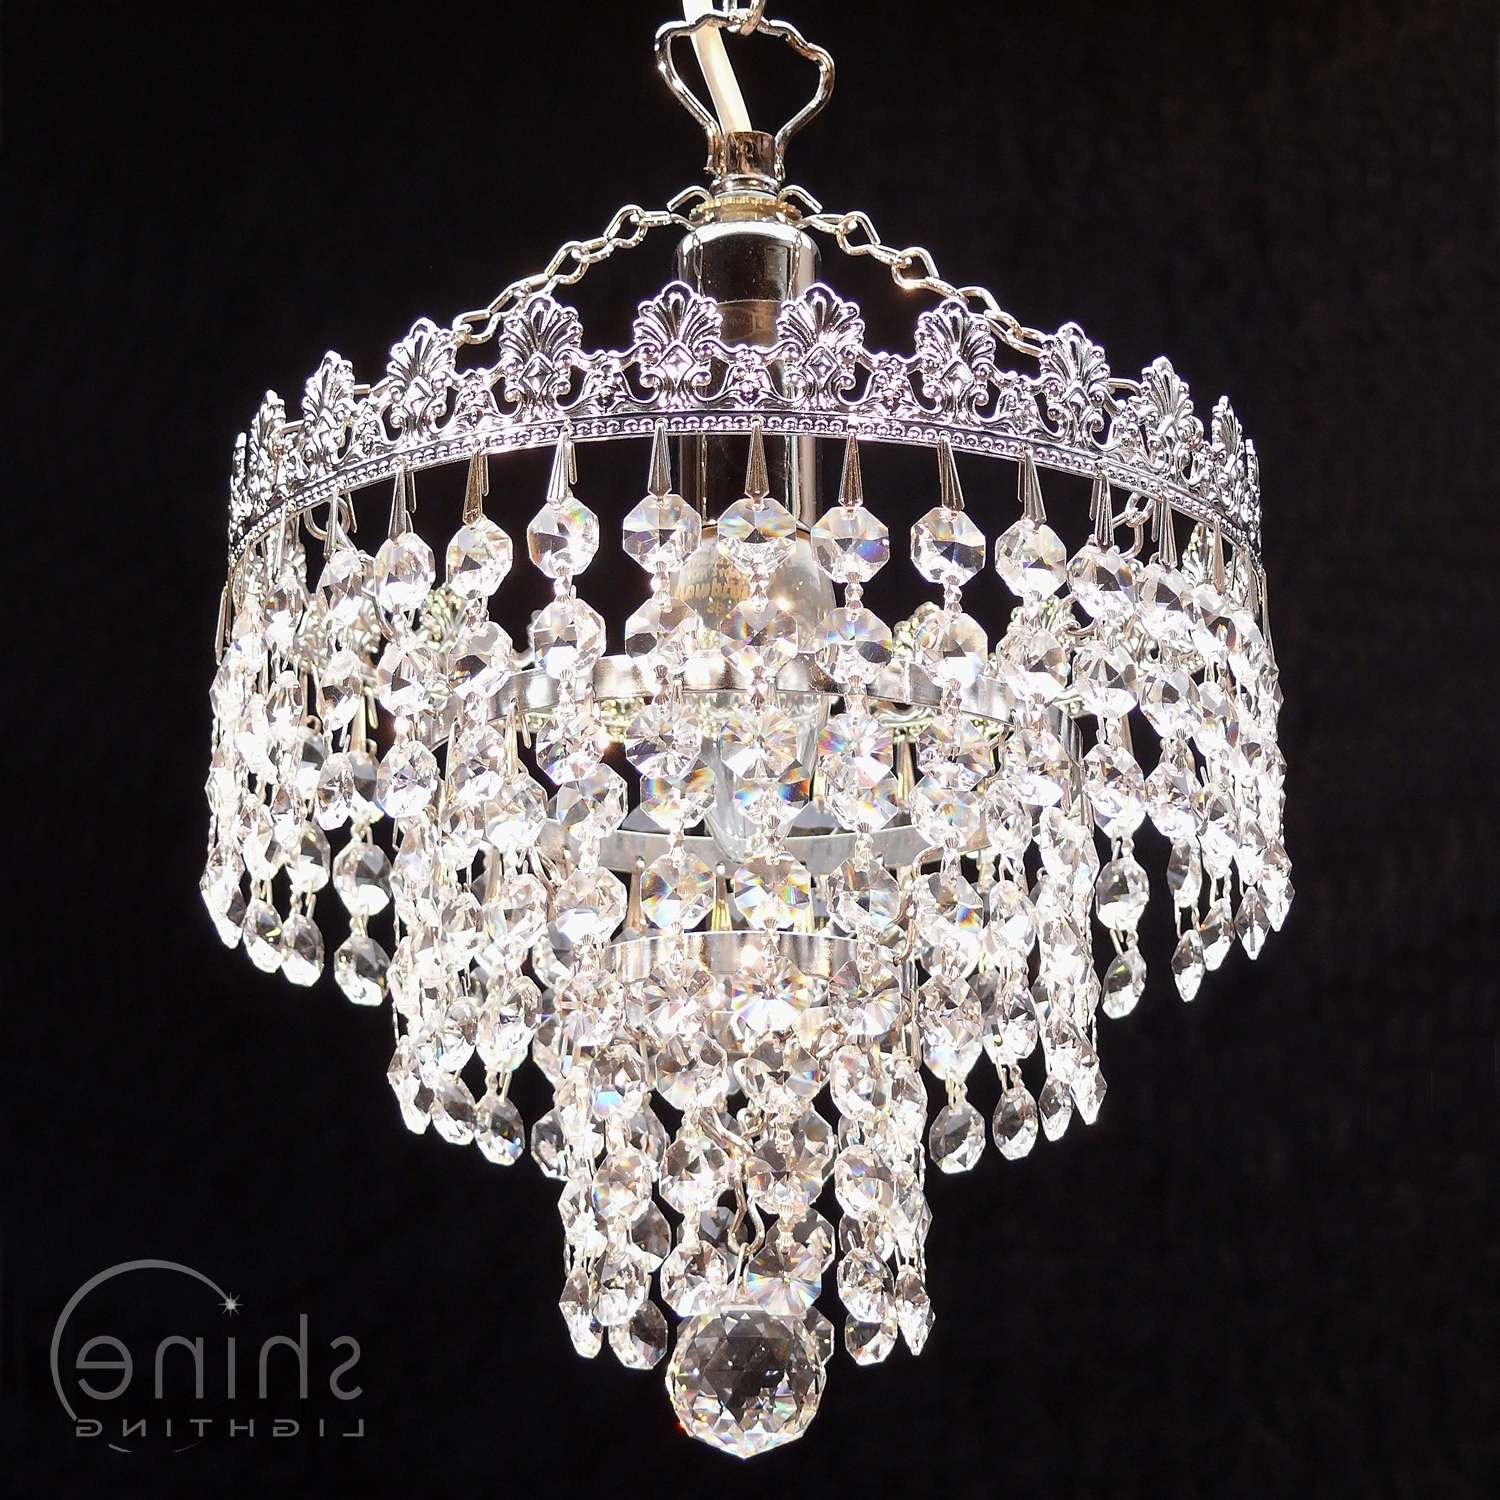 2019 8' 3 Tier Crystal Chandelier Throughout 3 Tier Crystal Chandelier (View 1 of 20)